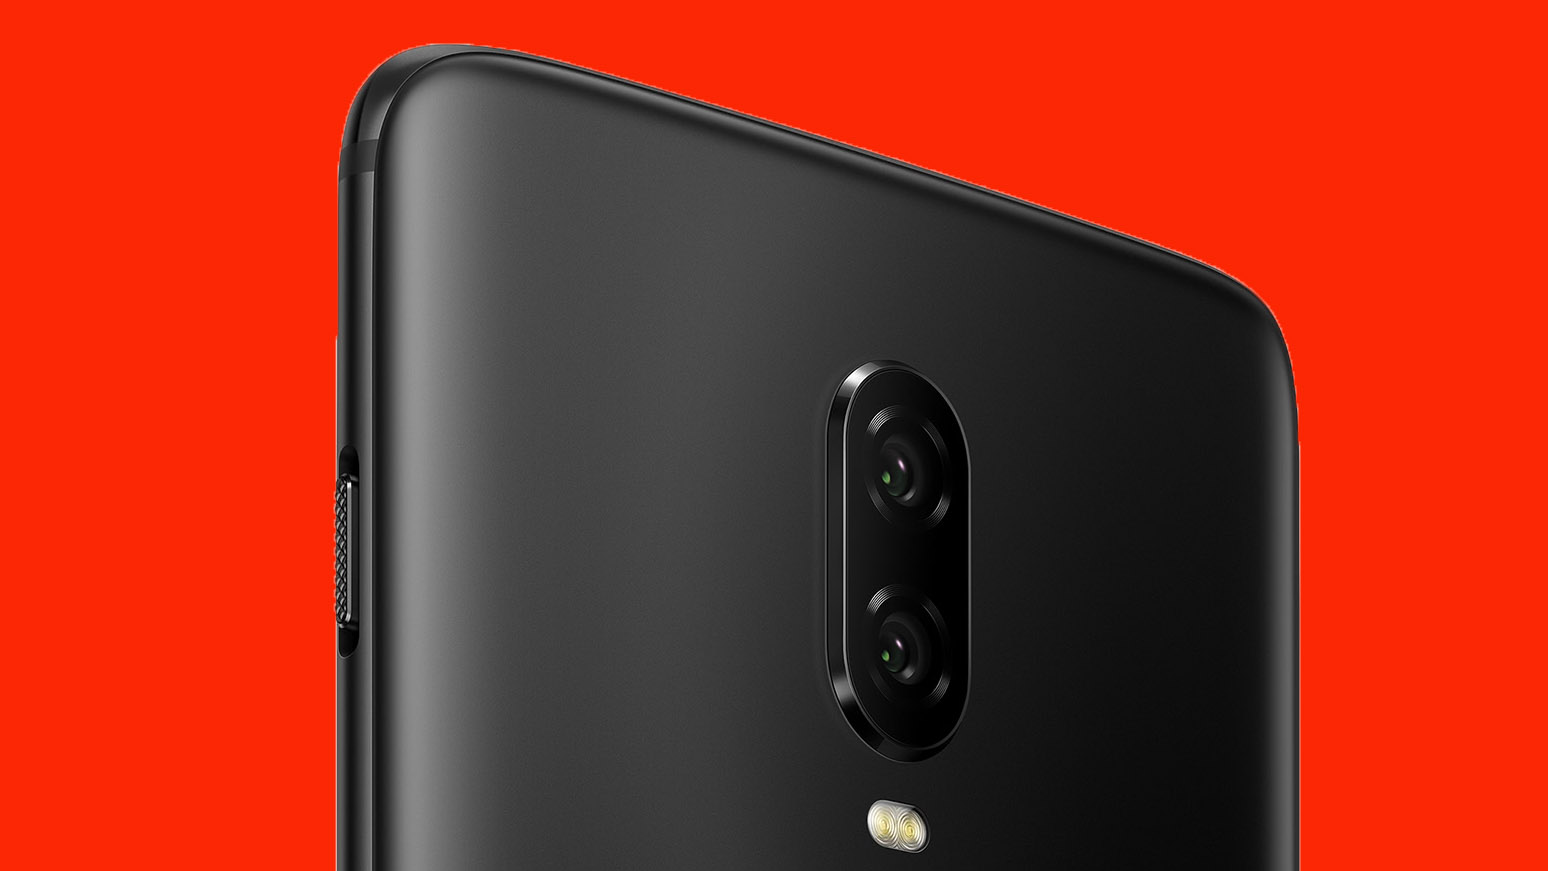 OnePlus 6T camera tips and tricks: get the most out of the